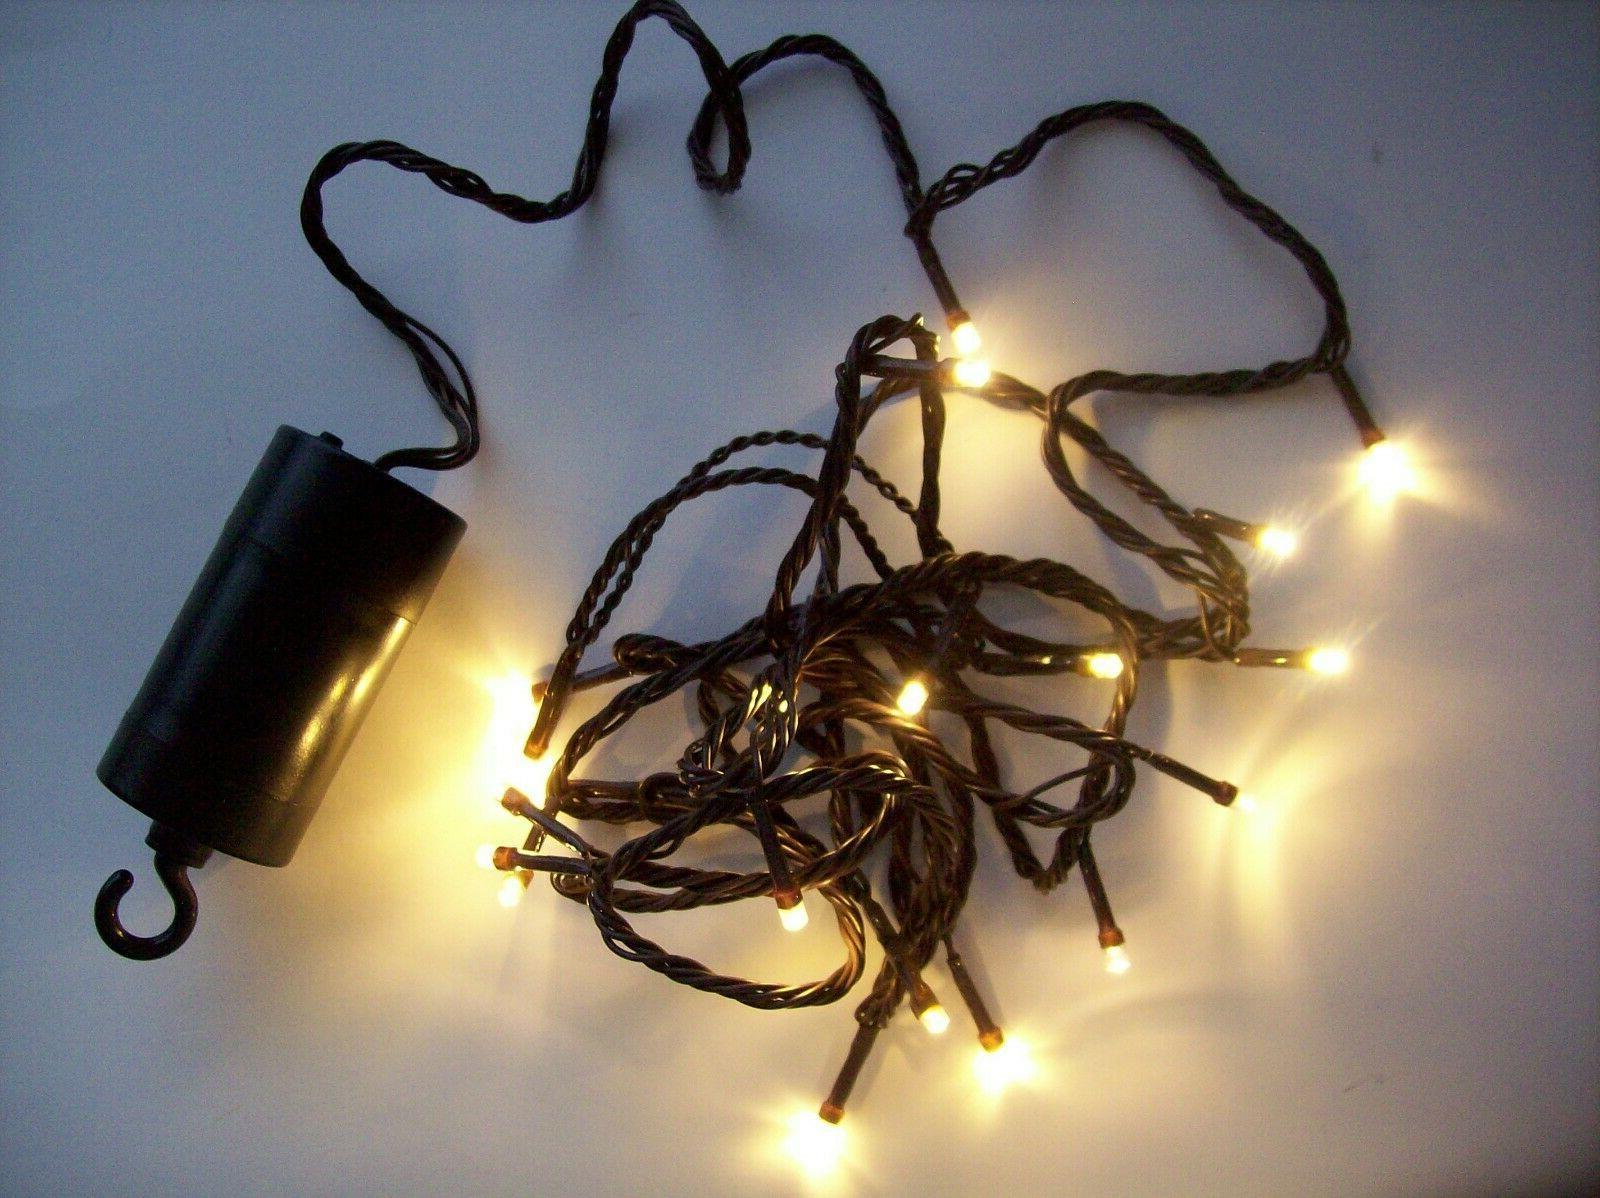 Deco Lights Led 35 Count 18'-Clear Bulbs W/Brown Wire